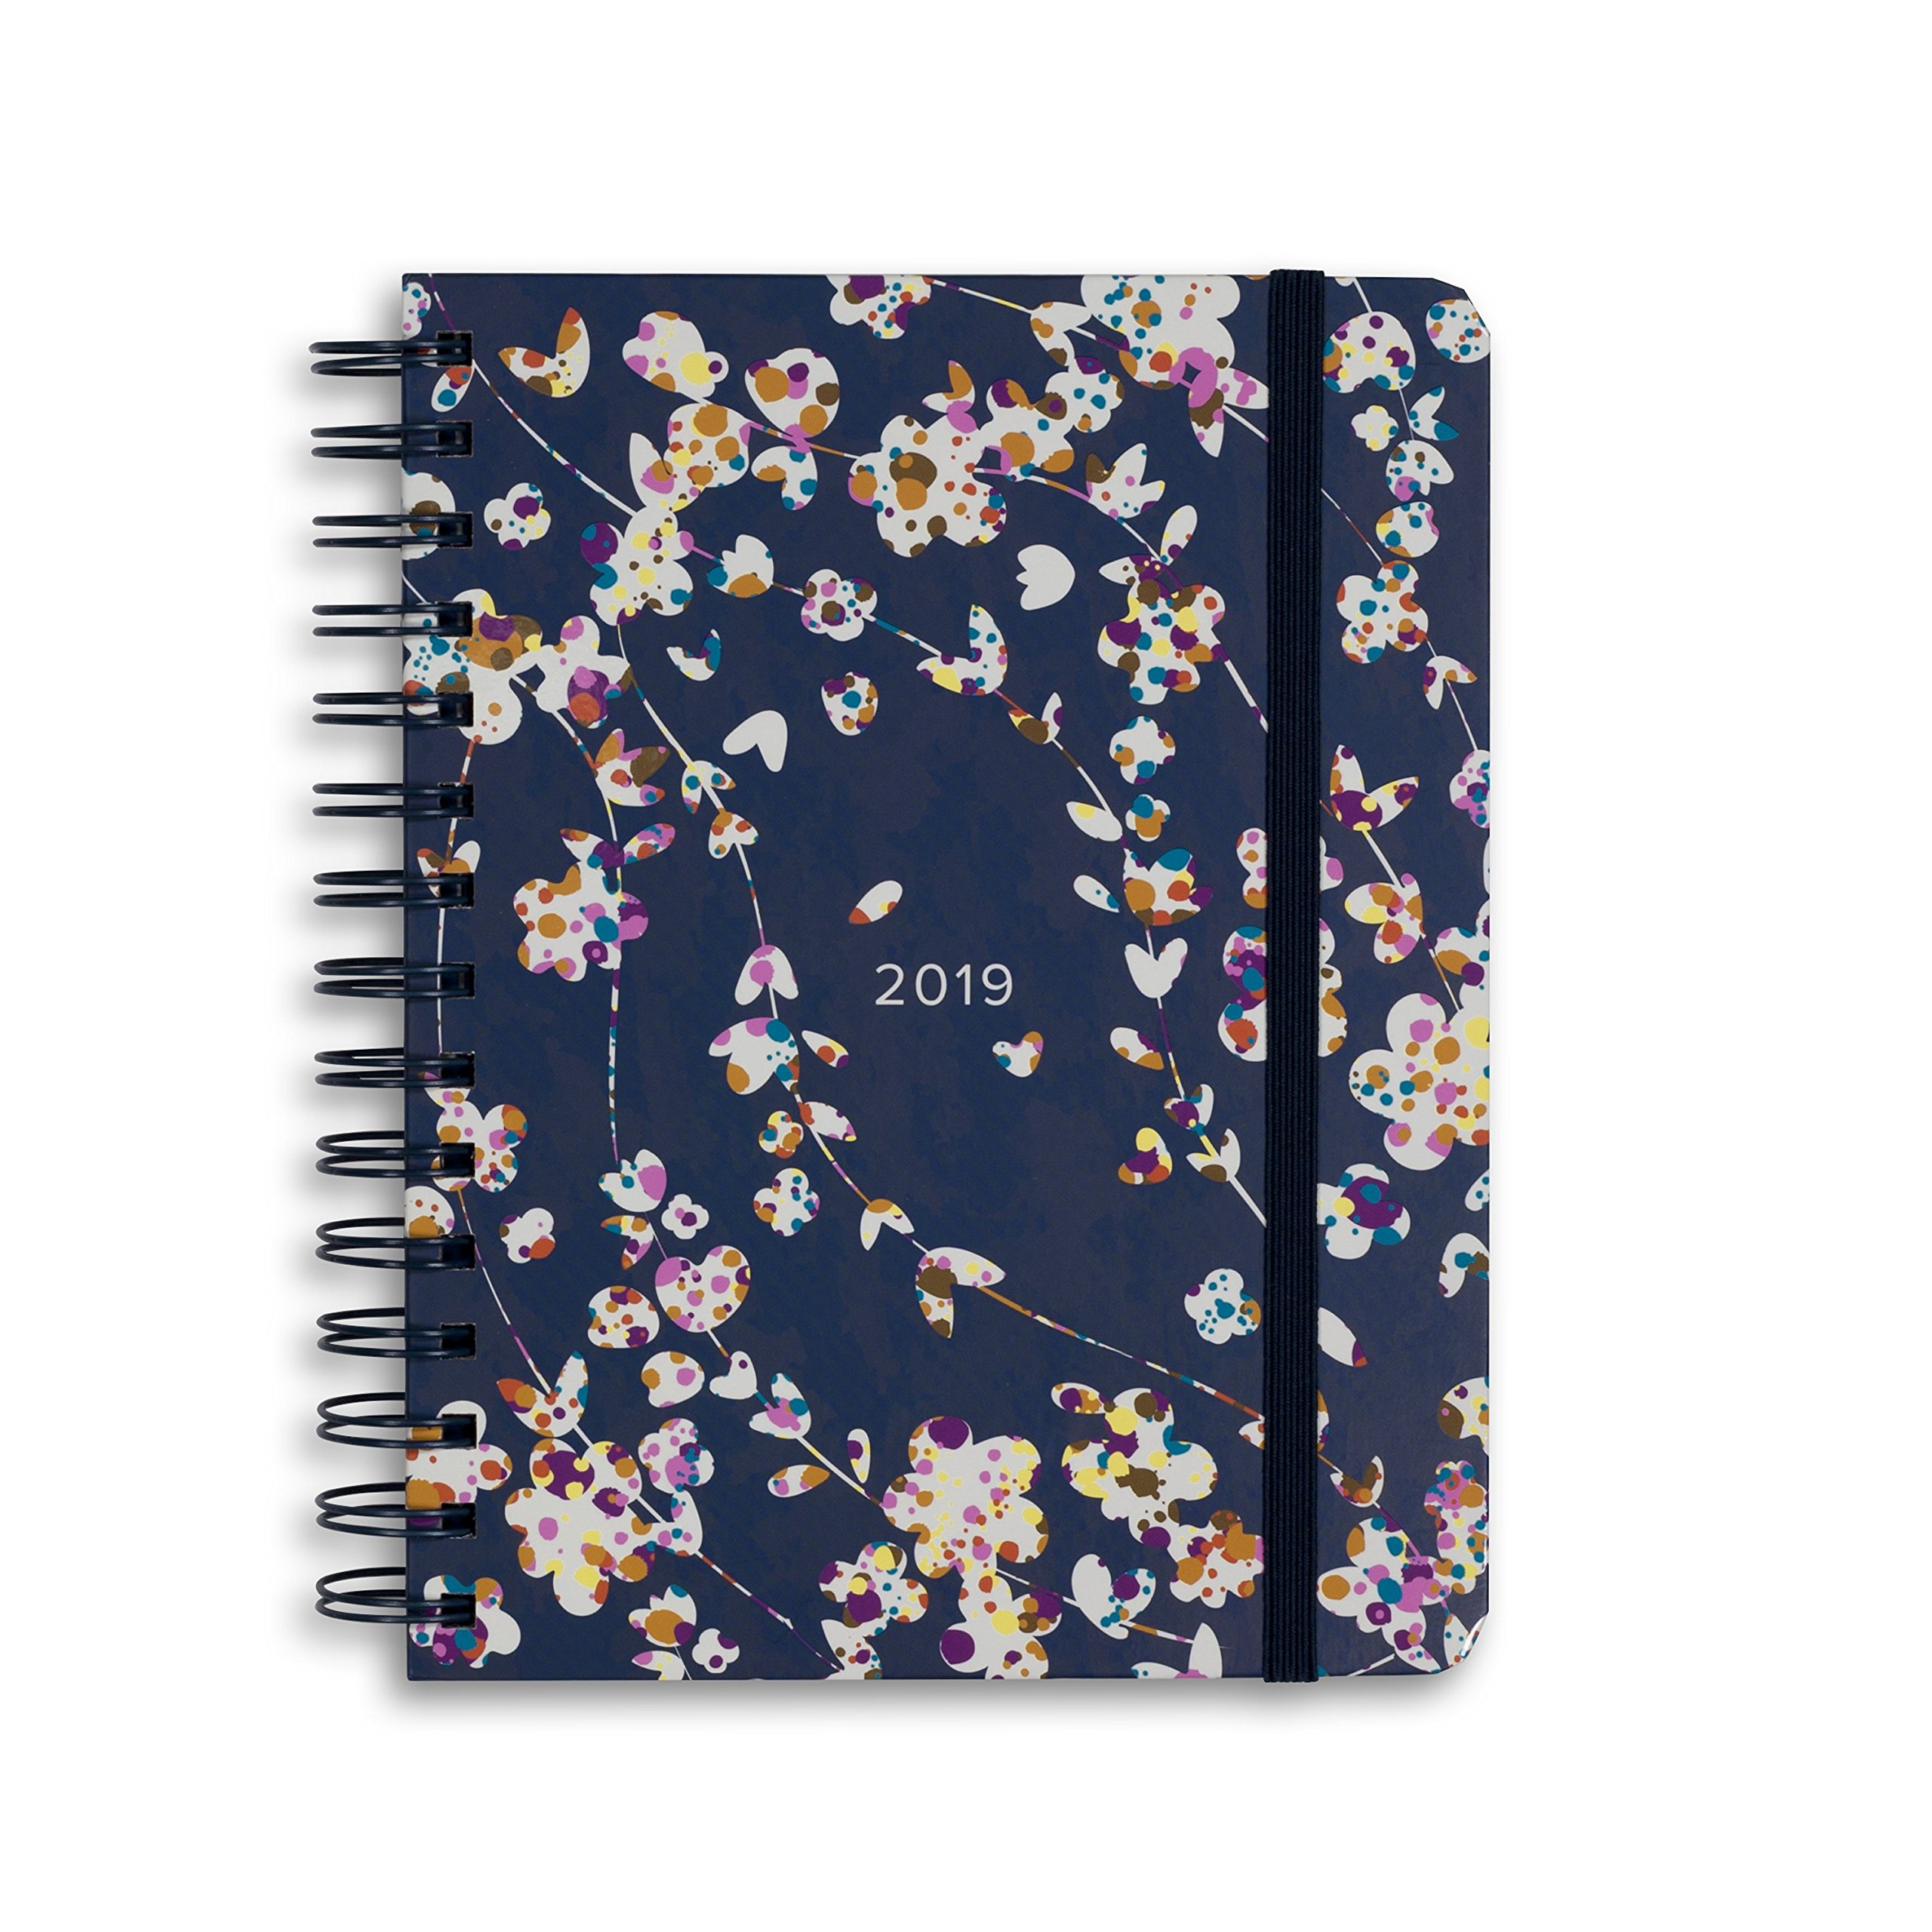 Vera Bradley 17 Month Medium Hardcover Planner 2018-2019 (Cut Vine)